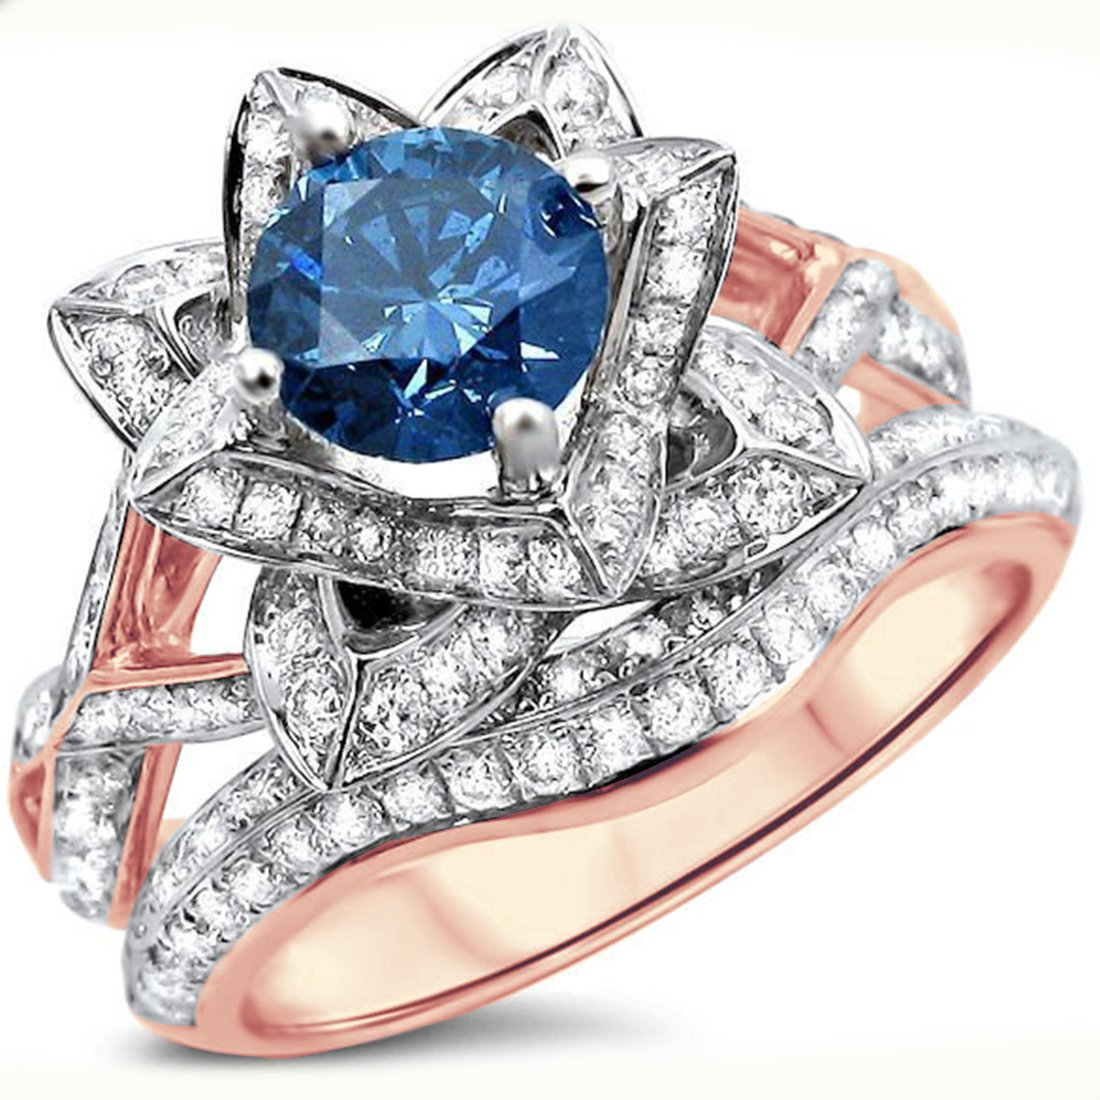 Smjewels 2.05 Ct Blue Round Sim.Diamond Lotus Flower Engagement Ring Set 14K Rose Gold Plated by Smjewels (Image #1)